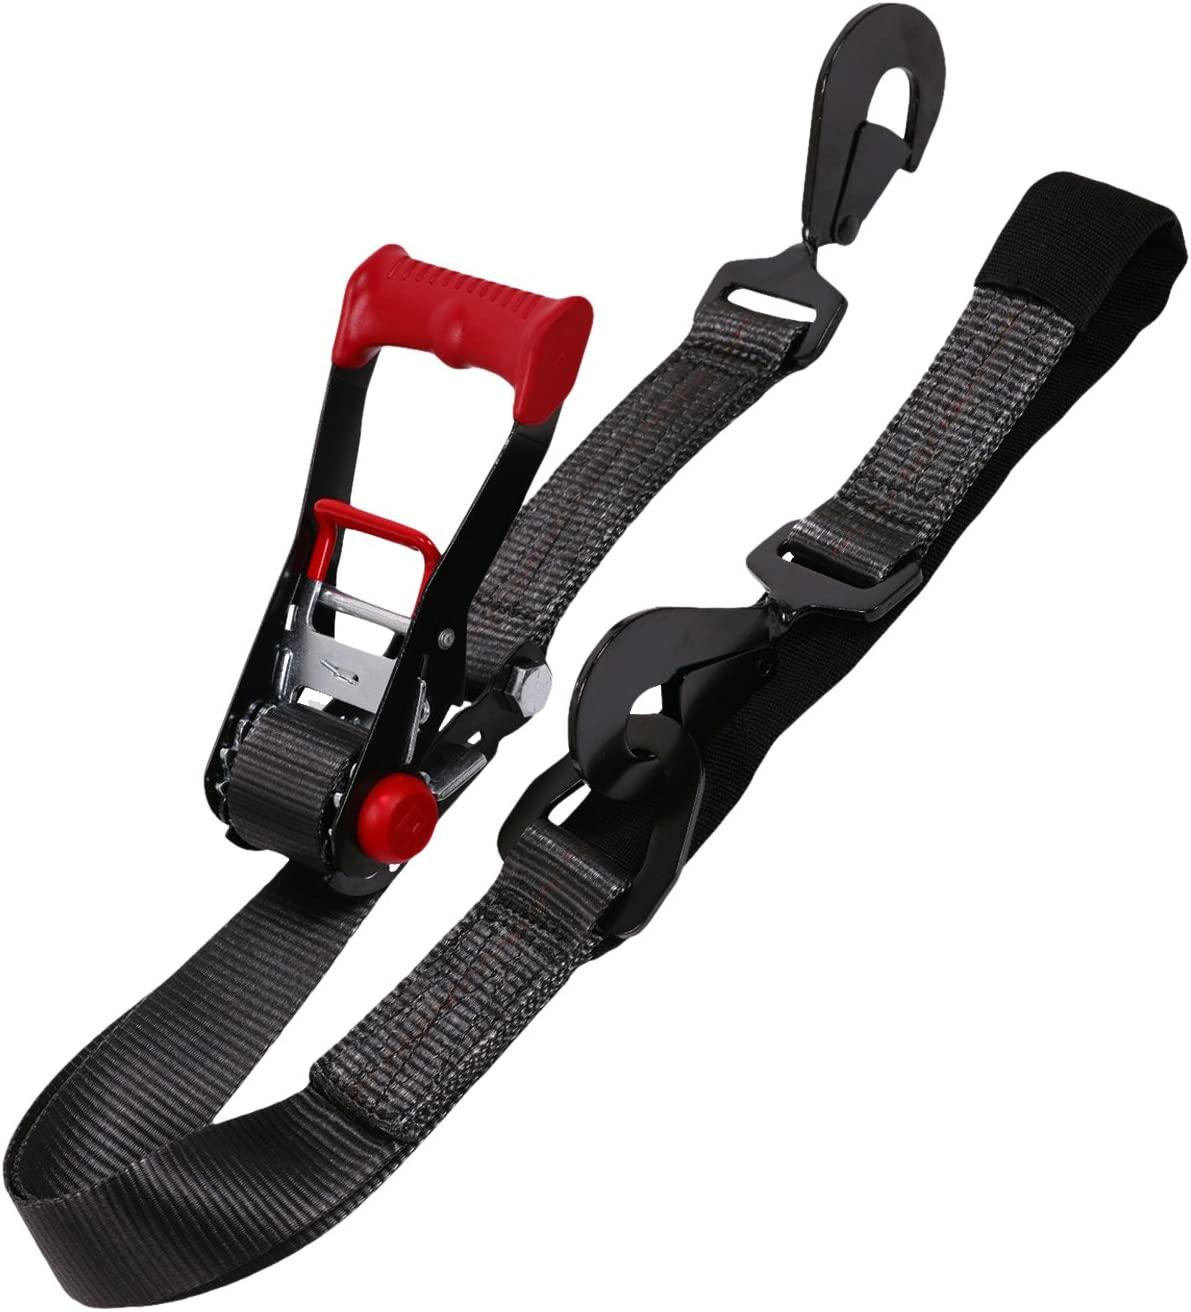 SpeedStrap 27001 Black Ratchet Tie Down Twisted Snap Hook and Axle Strap Combo